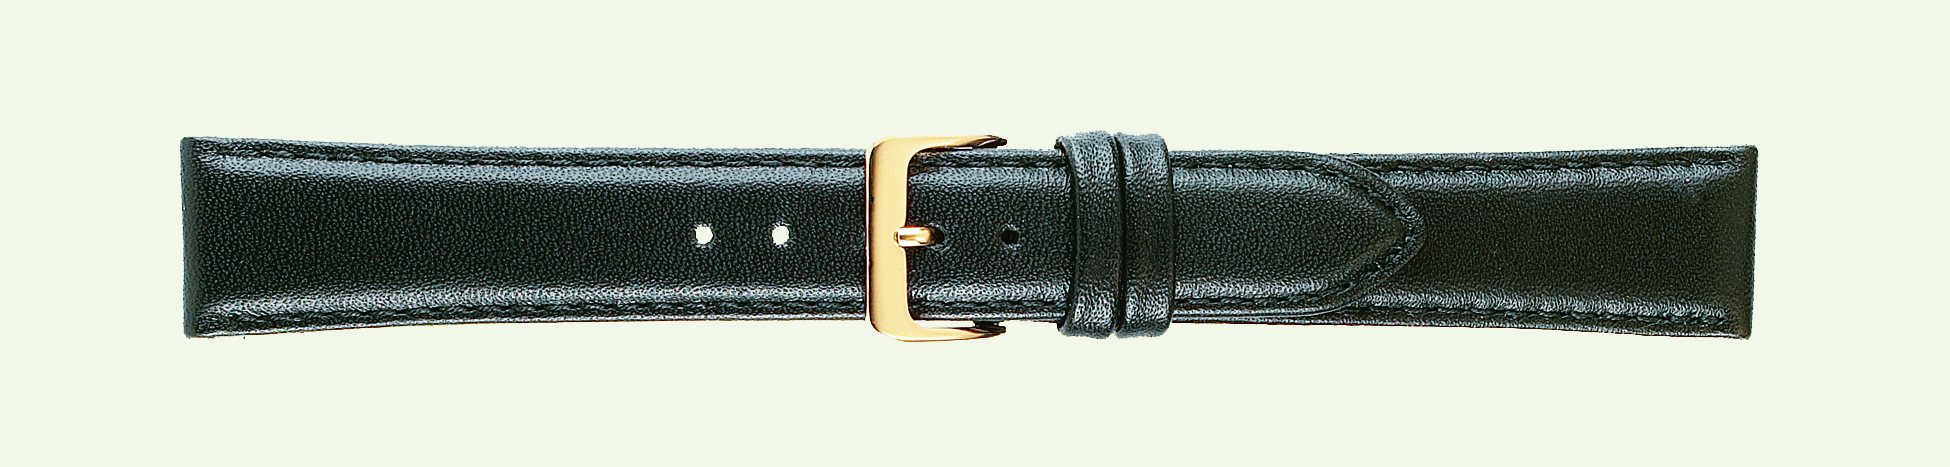 13MM Leather Band Black Classic Calf-0